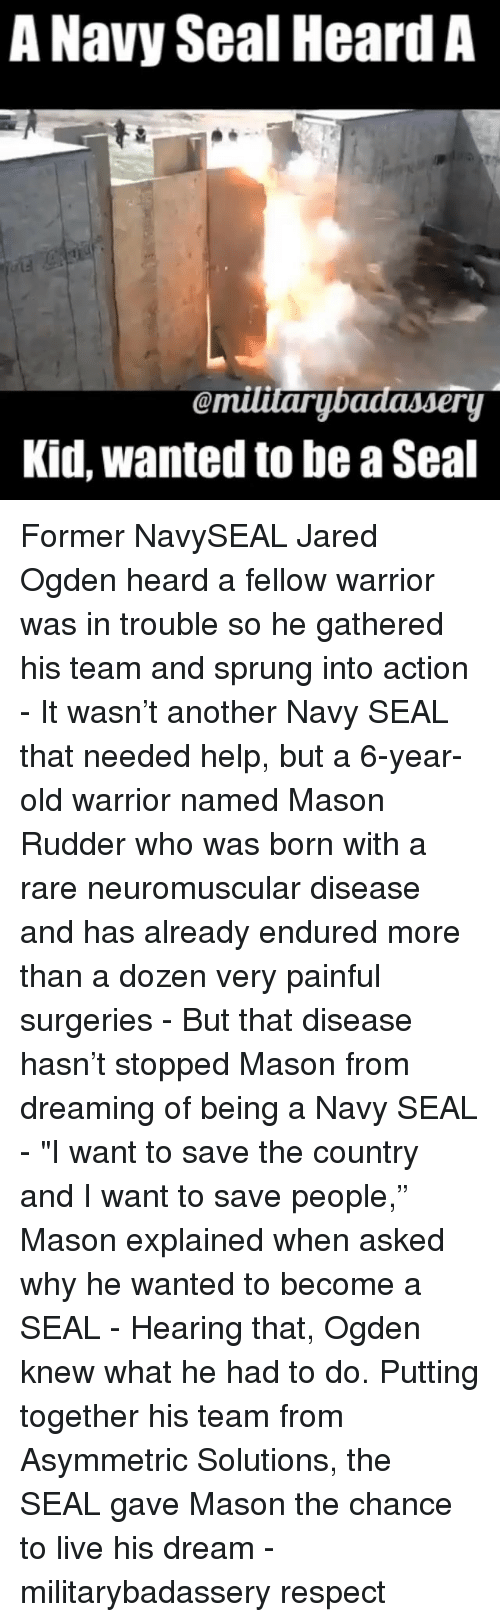 "Memes, Respect, and Help: A Navy Seal Heard A  emitarybadassery  Kid, wanted to be a Seal Former NavySEAL Jared Ogden heard a fellow warrior was in trouble so he gathered his team and sprung into action - It wasn't another Navy SEAL that needed help, but a 6-year-old warrior named Mason Rudder who was born with a rare neuromuscular disease and has already endured more than a dozen very painful surgeries - But that disease hasn't stopped Mason from dreaming of being a Navy SEAL - ""I want to save the country and I want to save people,"" Mason explained when asked why he wanted to become a SEAL - Hearing that, Ogden knew what he had to do. Putting together his team from Asymmetric Solutions, the SEAL gave Mason the chance to live his dream - militarybadassery respect"